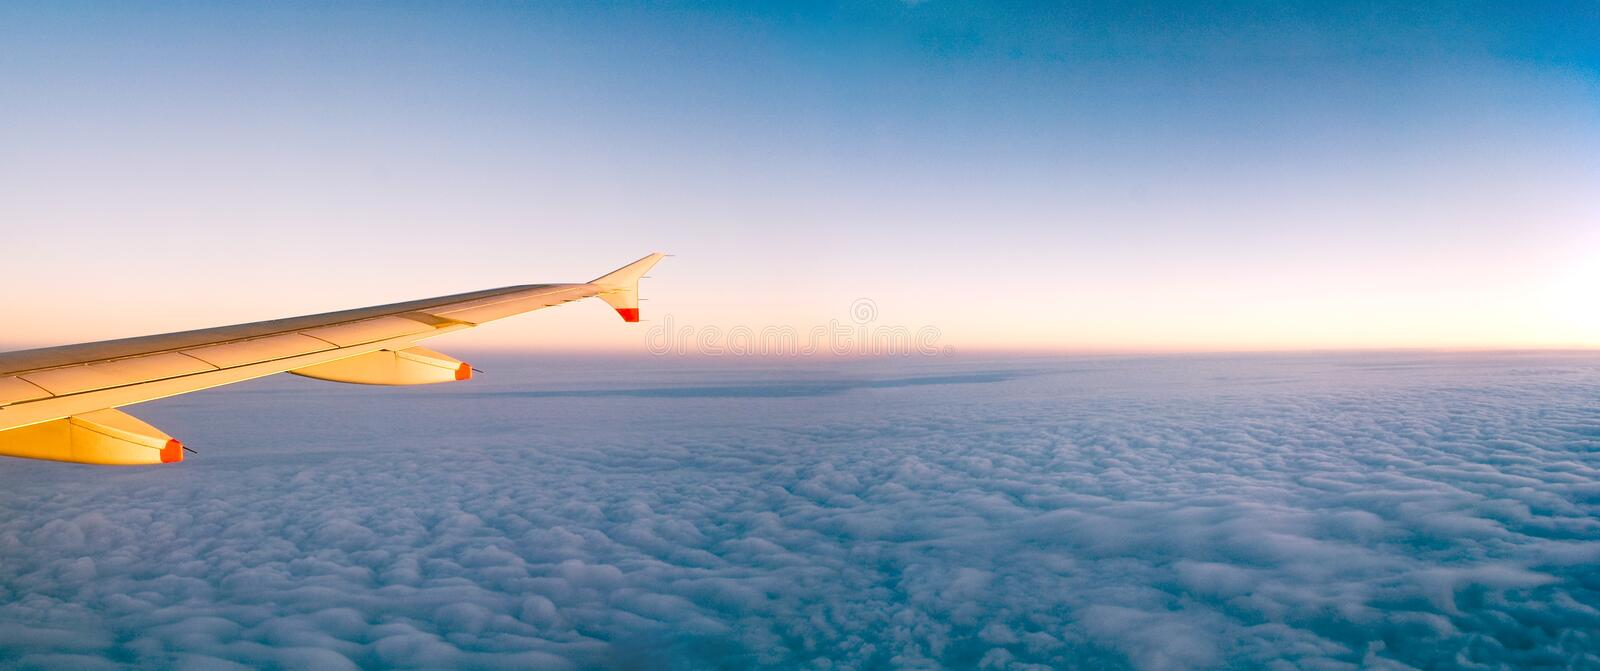 Download Plane wing over clouds stock image. Image of flying, flight - 17072053